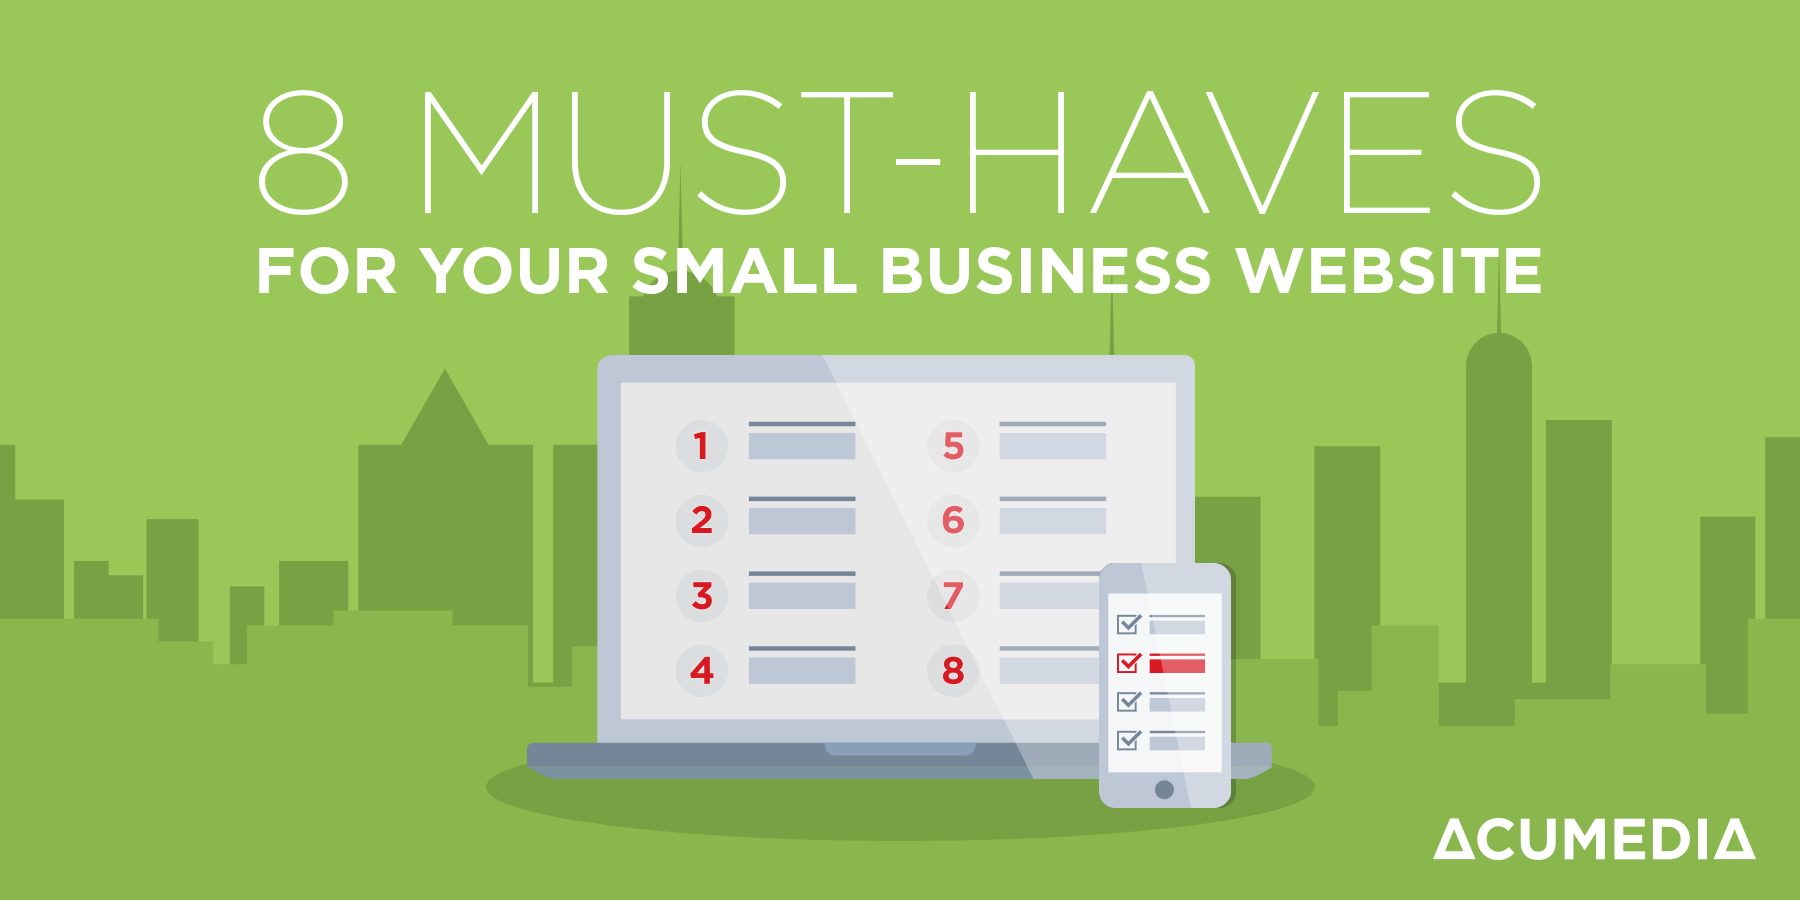 Top 8 essential elements that you must-have for your small business website to succeed